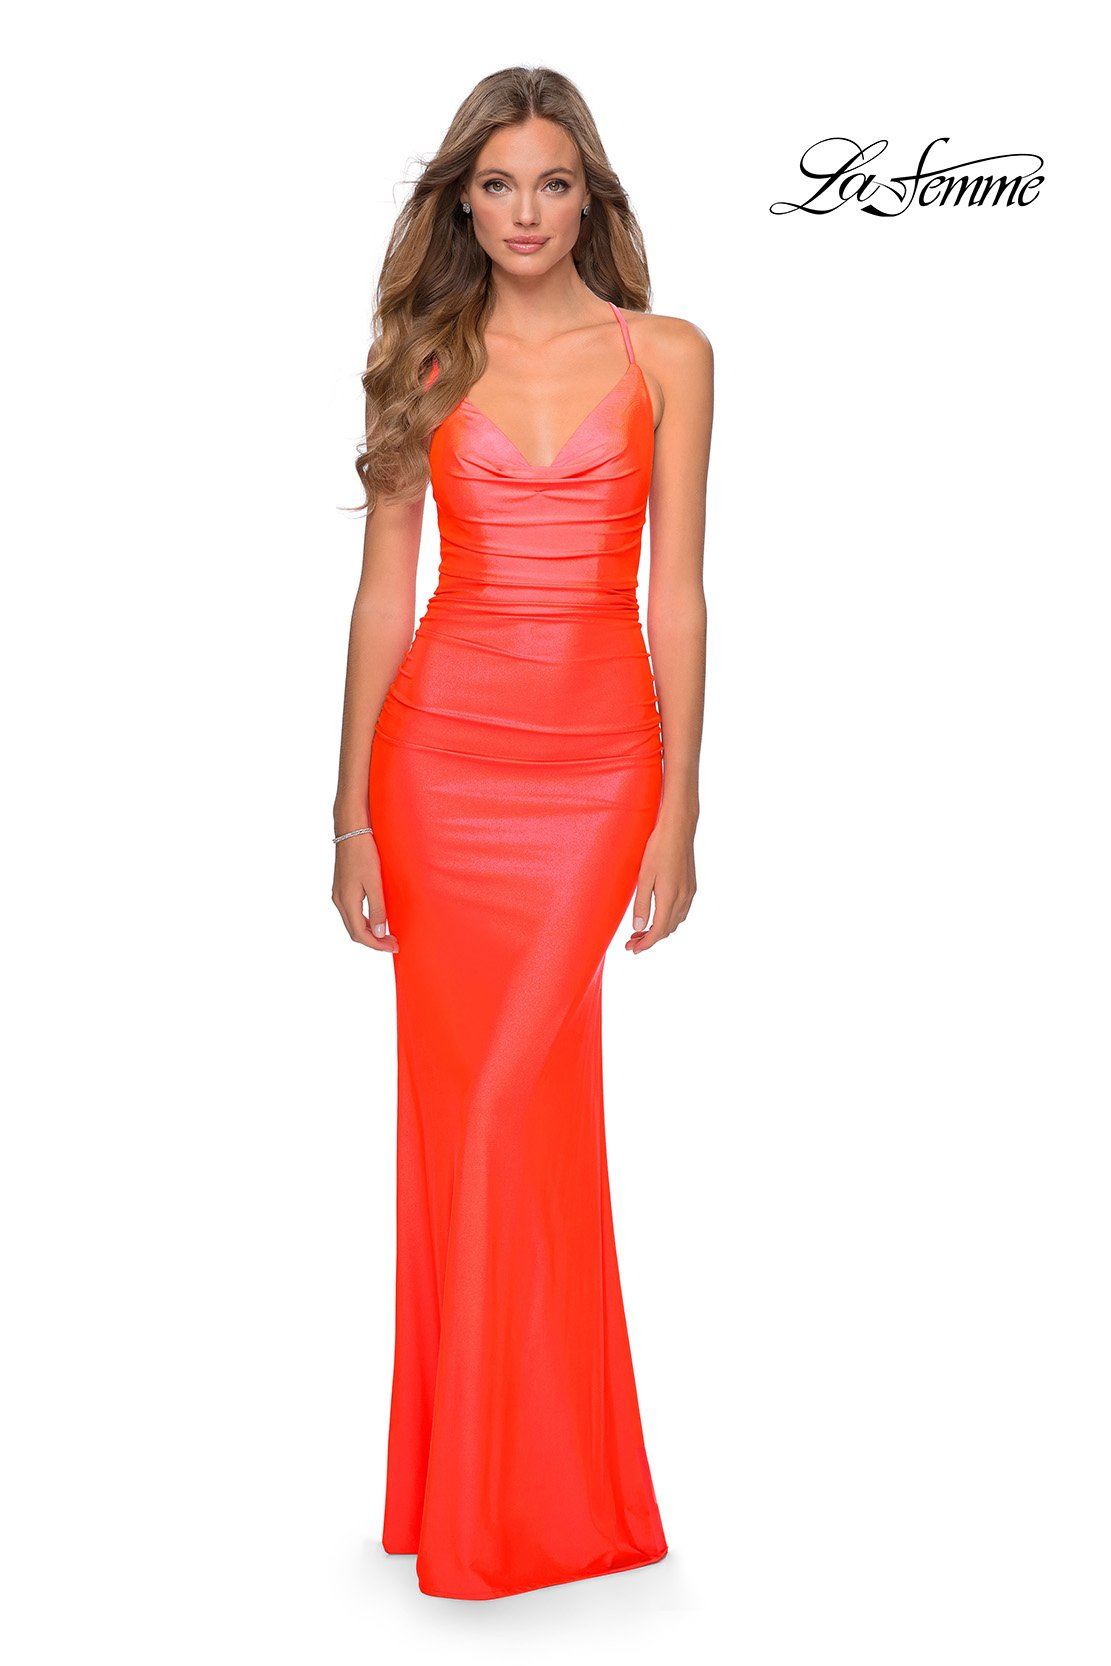 La Femme 29010 prom dress images.  La Femme 29010 is available in these colors: Neon Coral, Neon Pink, Neon Yellow.